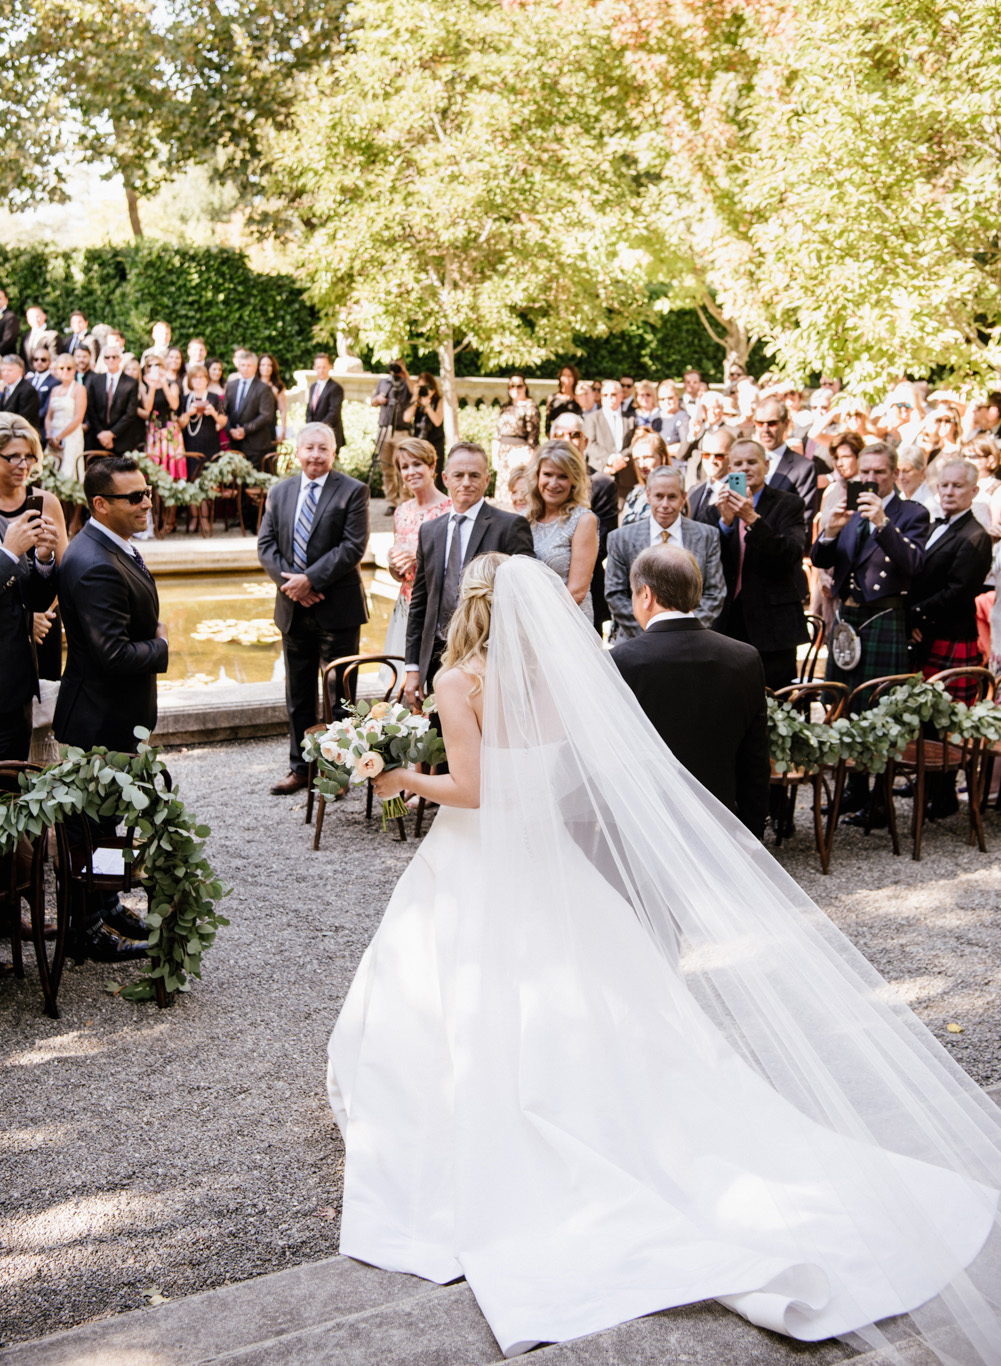 The bride and her father walk toward the ceremony arbor at Beaulieu Gardens; Sylvie Gil Photography